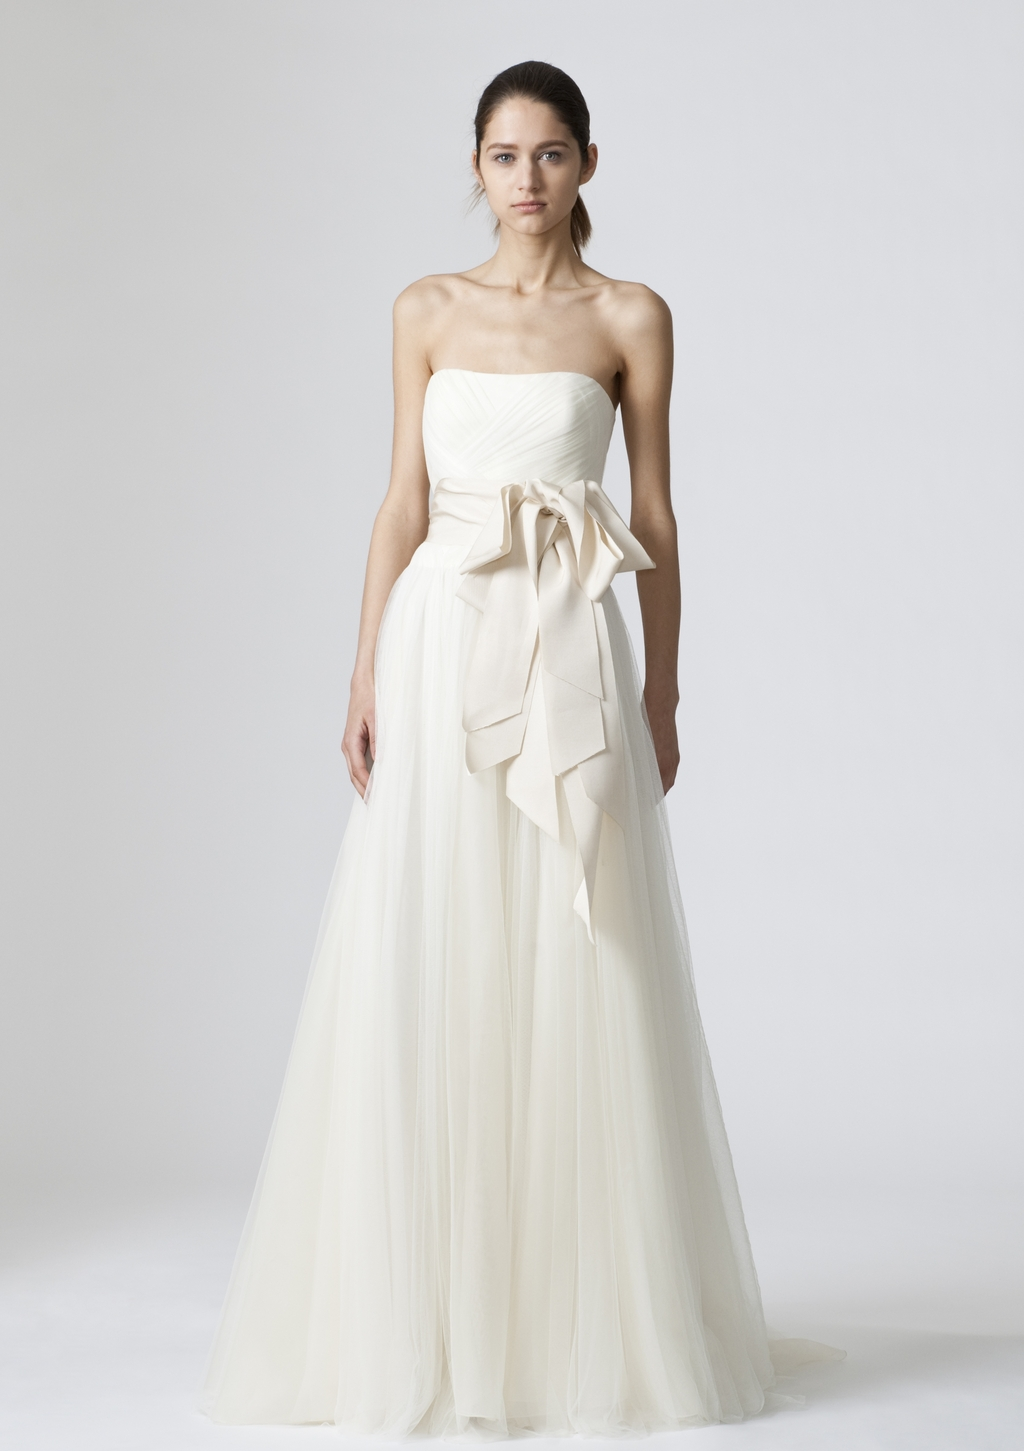 Vera-wang-wedding-dresses-spring-2010-11.full